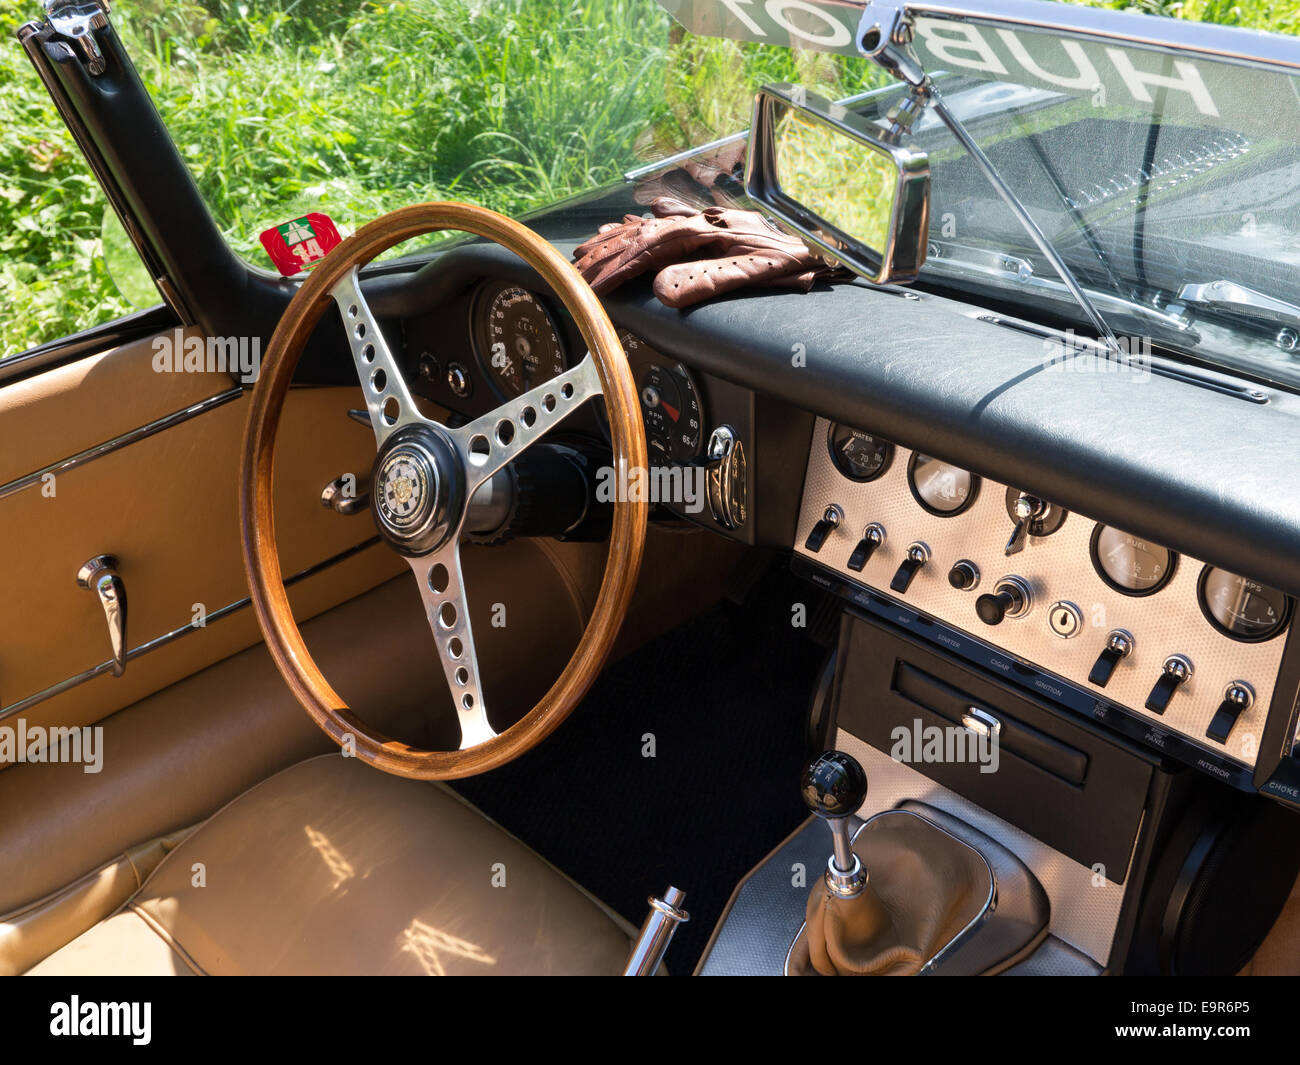 Jaguar driving gloves uk - Interior Of A Classic Jaguar E Type Car With Driving Gloves On The Dash